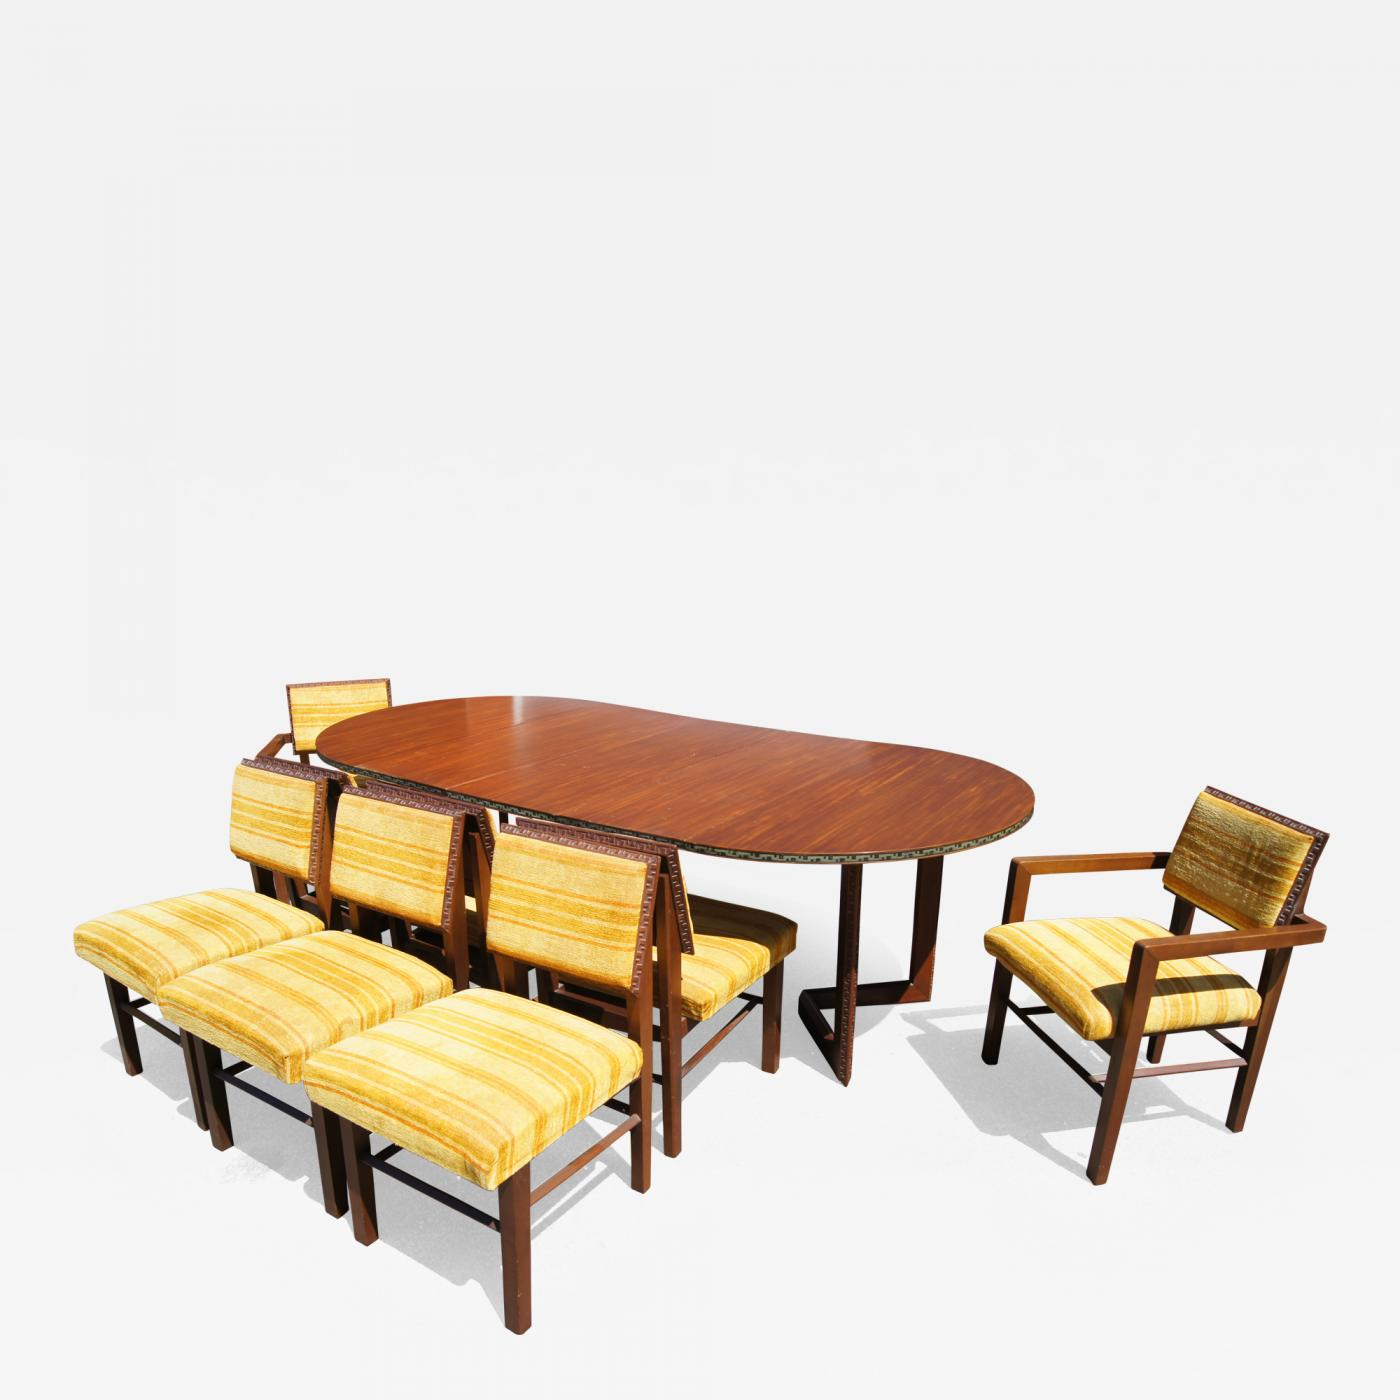 Enjoyable Frank Lloyd Wright Taliesin Dining Table Eight Chairs By Frank Lloyd Wright For Heritage Henredon Inzonedesignstudio Interior Chair Design Inzonedesignstudiocom